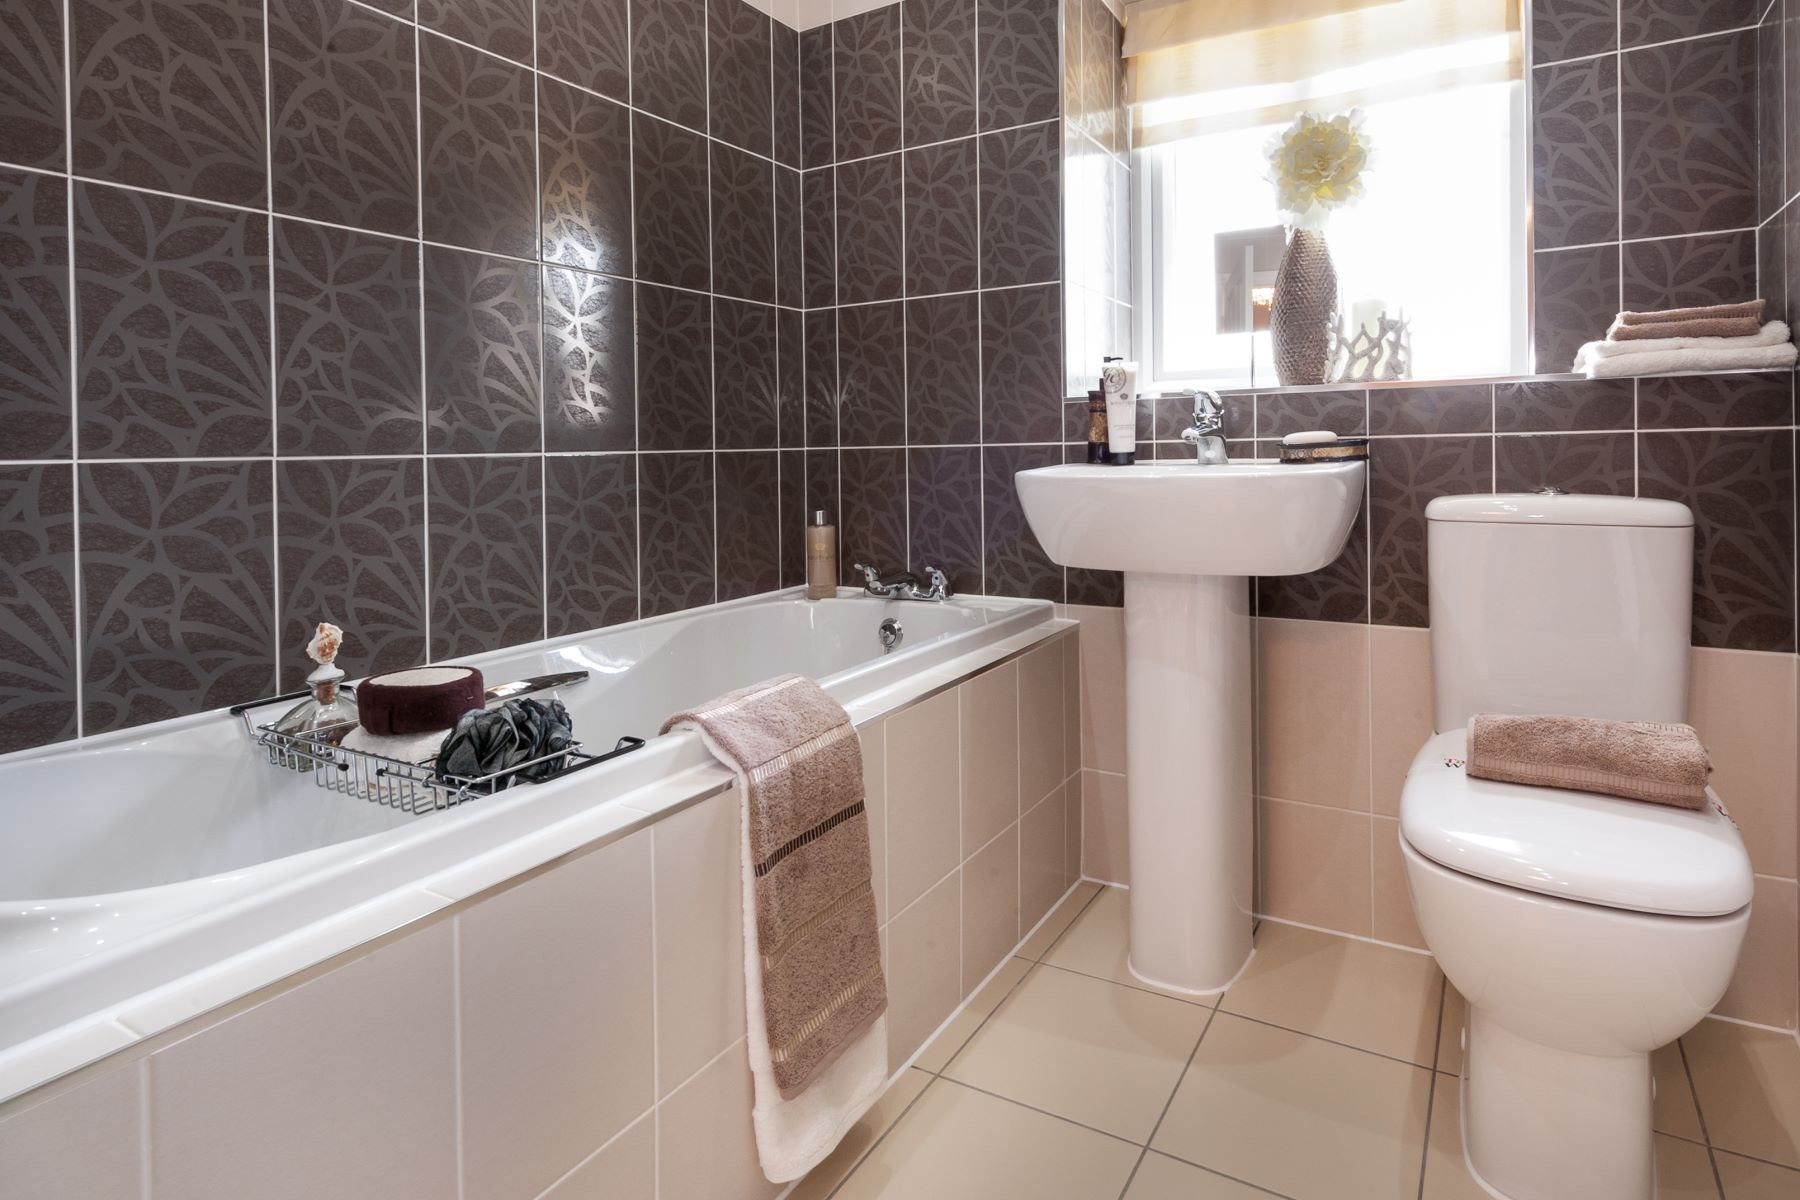 015_Bathroom_Haddenham